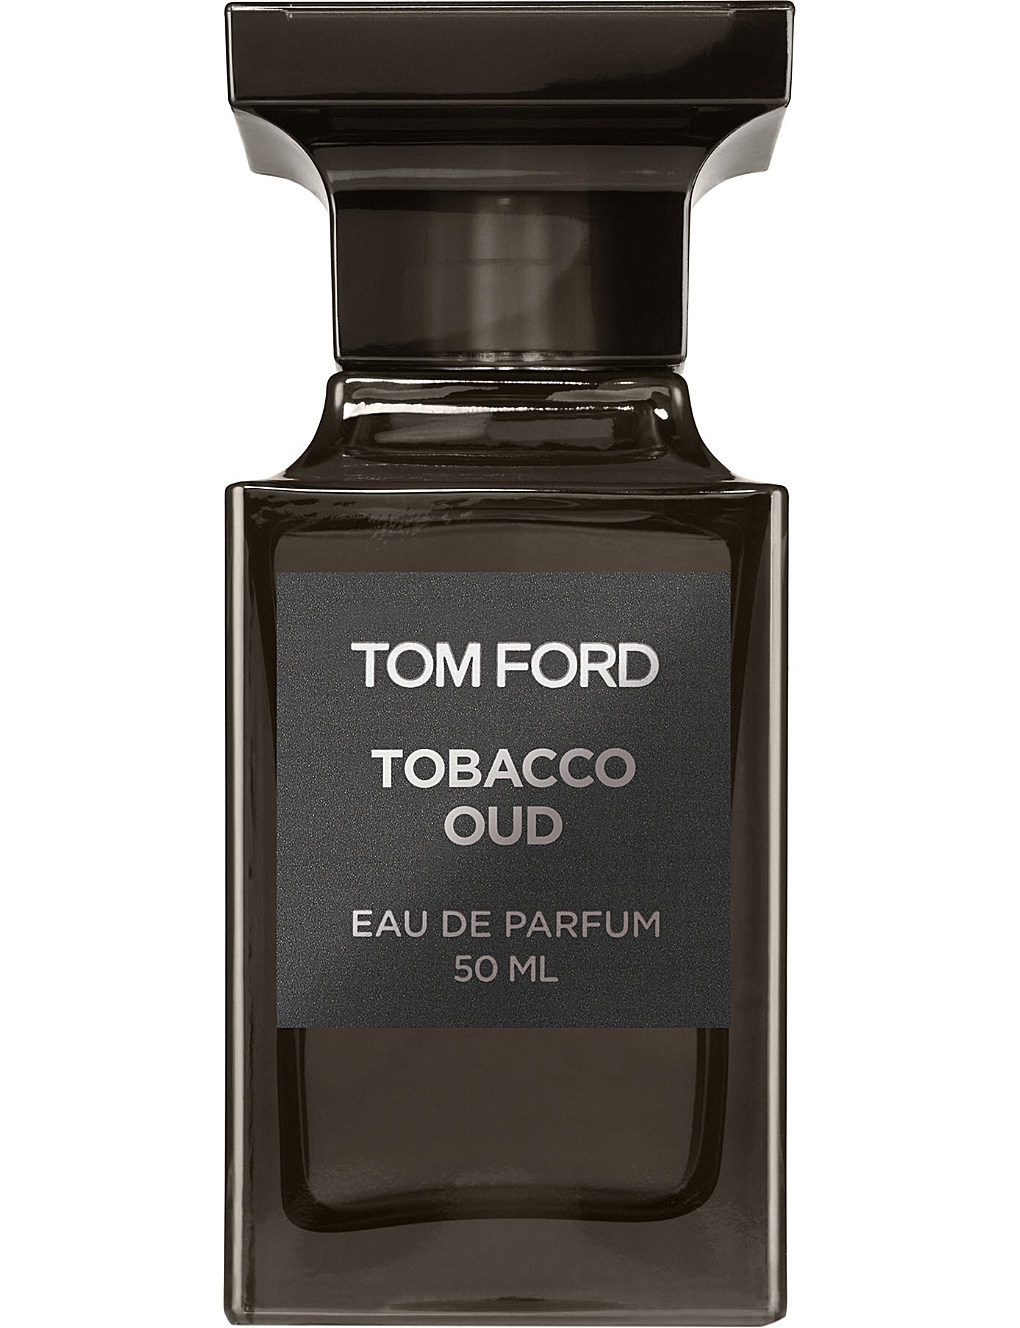 tom ford tobacco oud eau de parfum 50 ml vapo. Black Bedroom Furniture Sets. Home Design Ideas